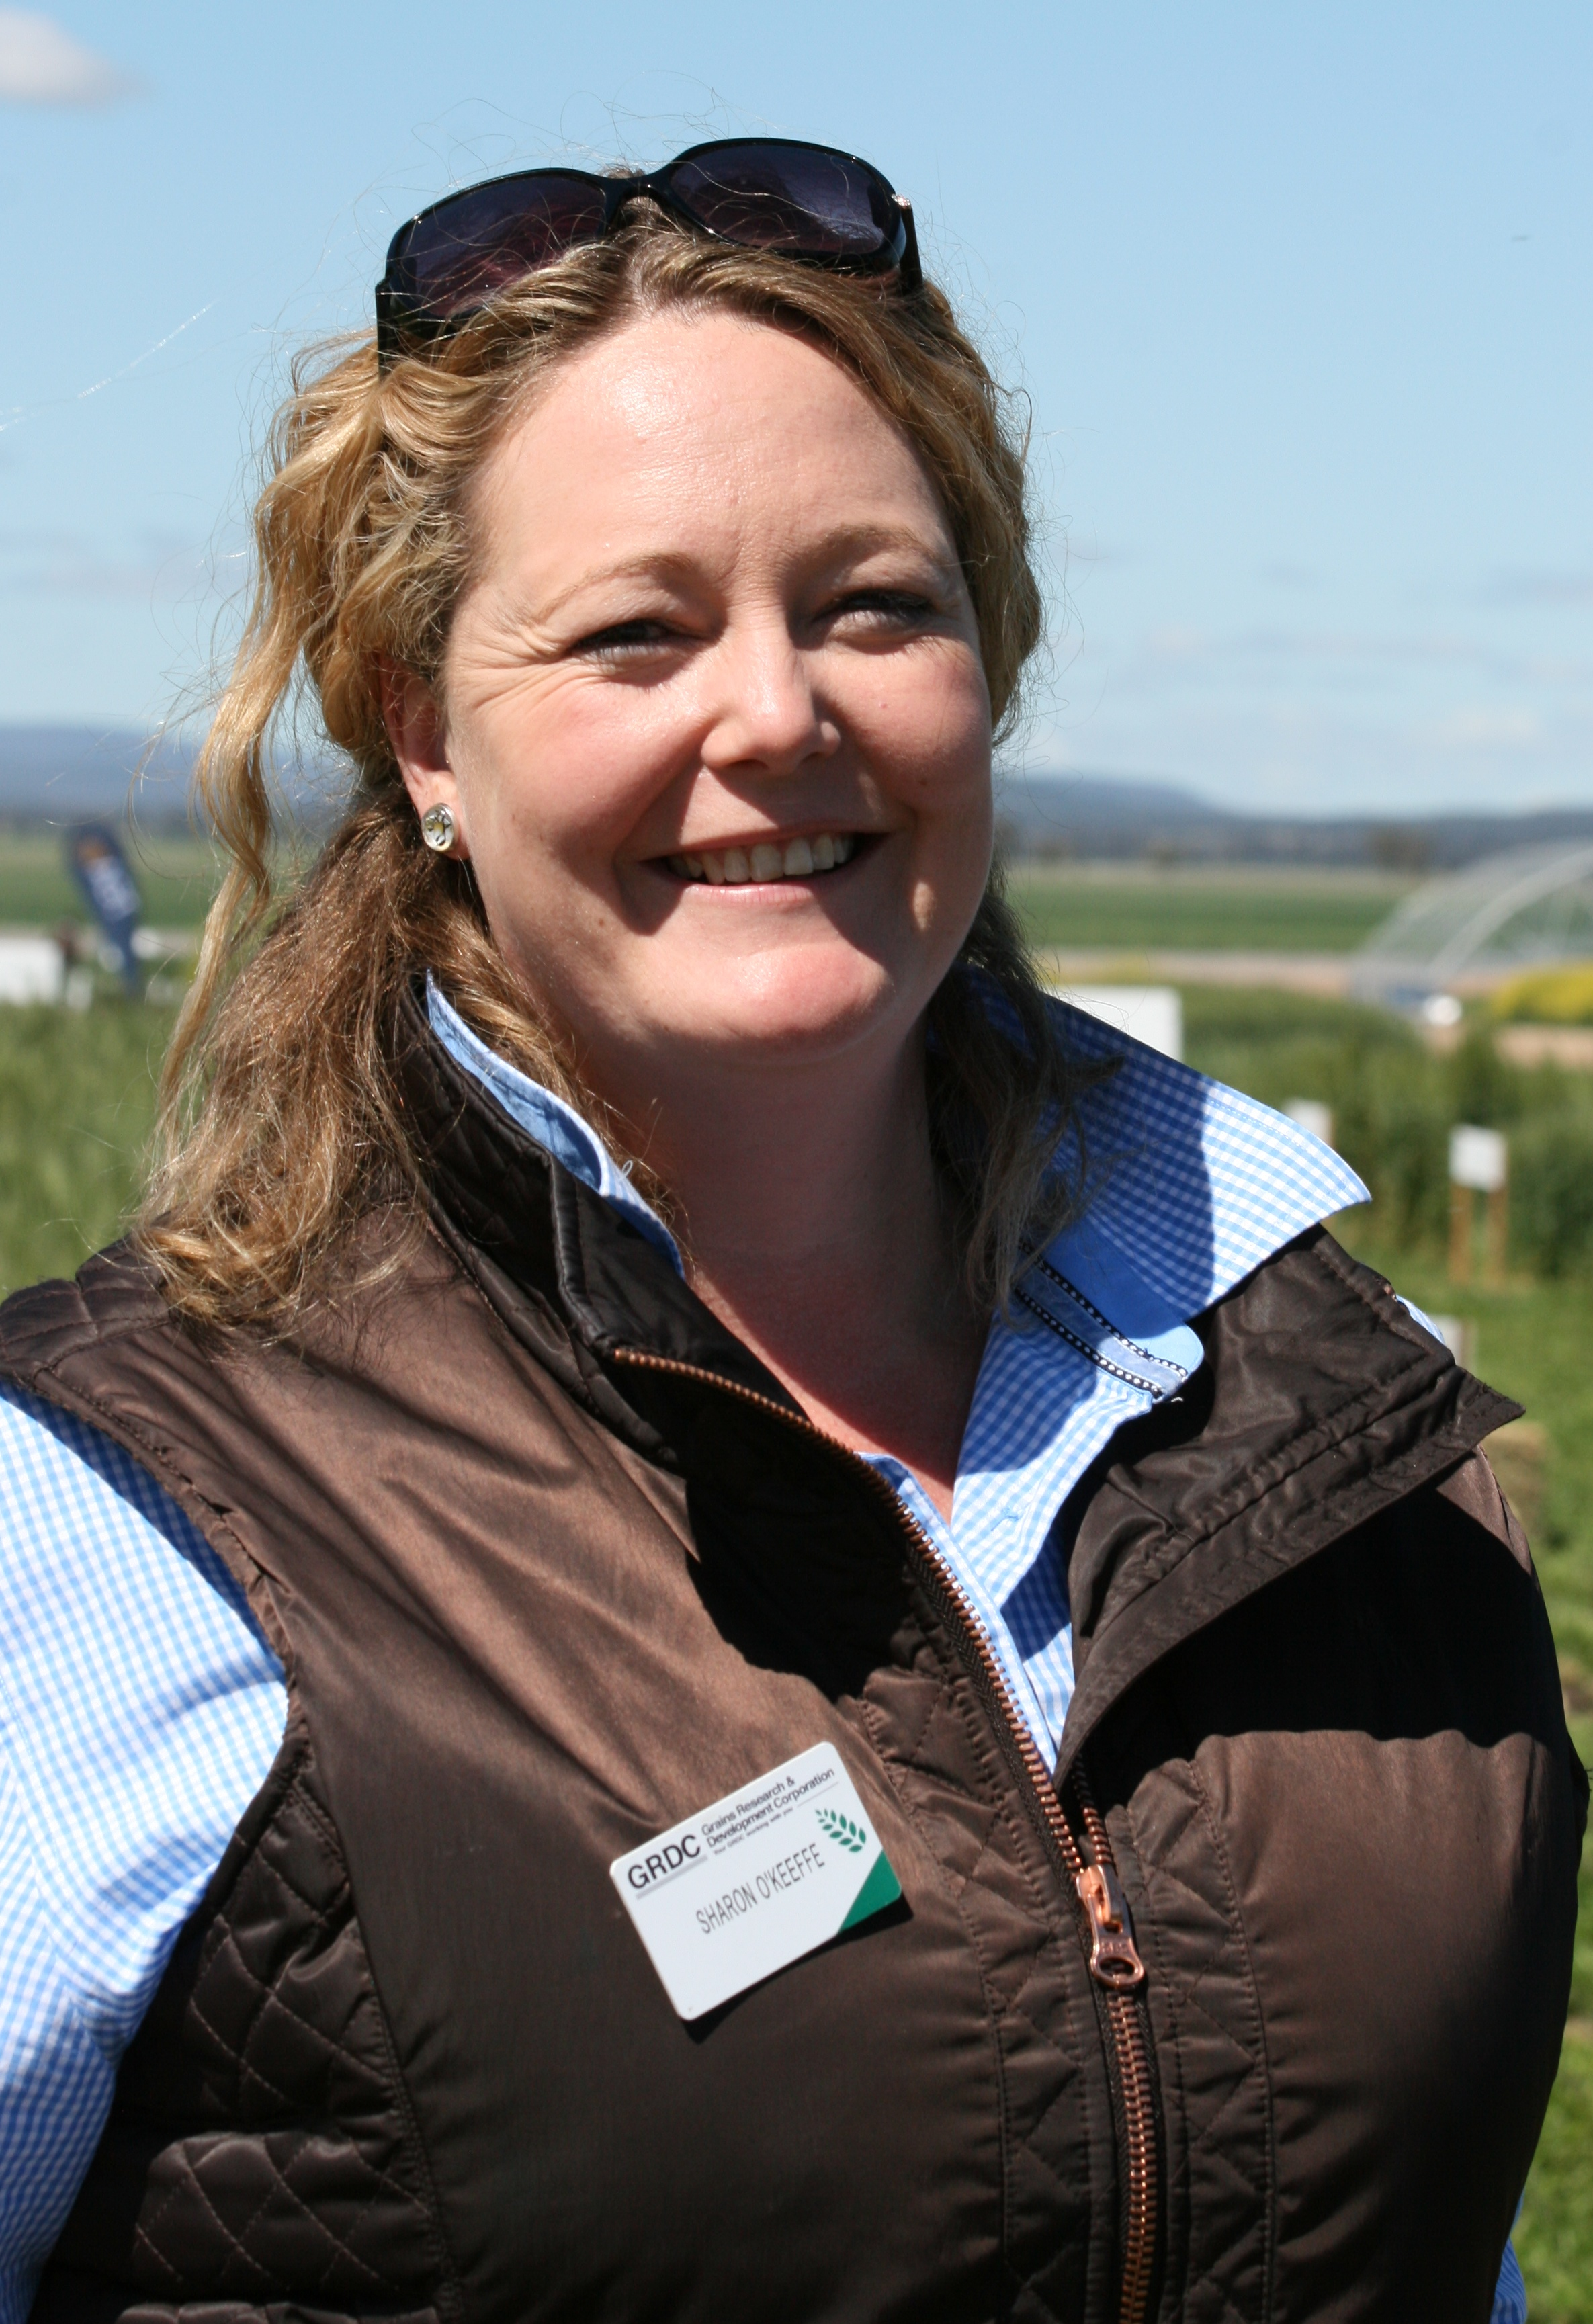 GRDC Manager Regional Grower Services, North Sharon O'Keeffe in a paddock.